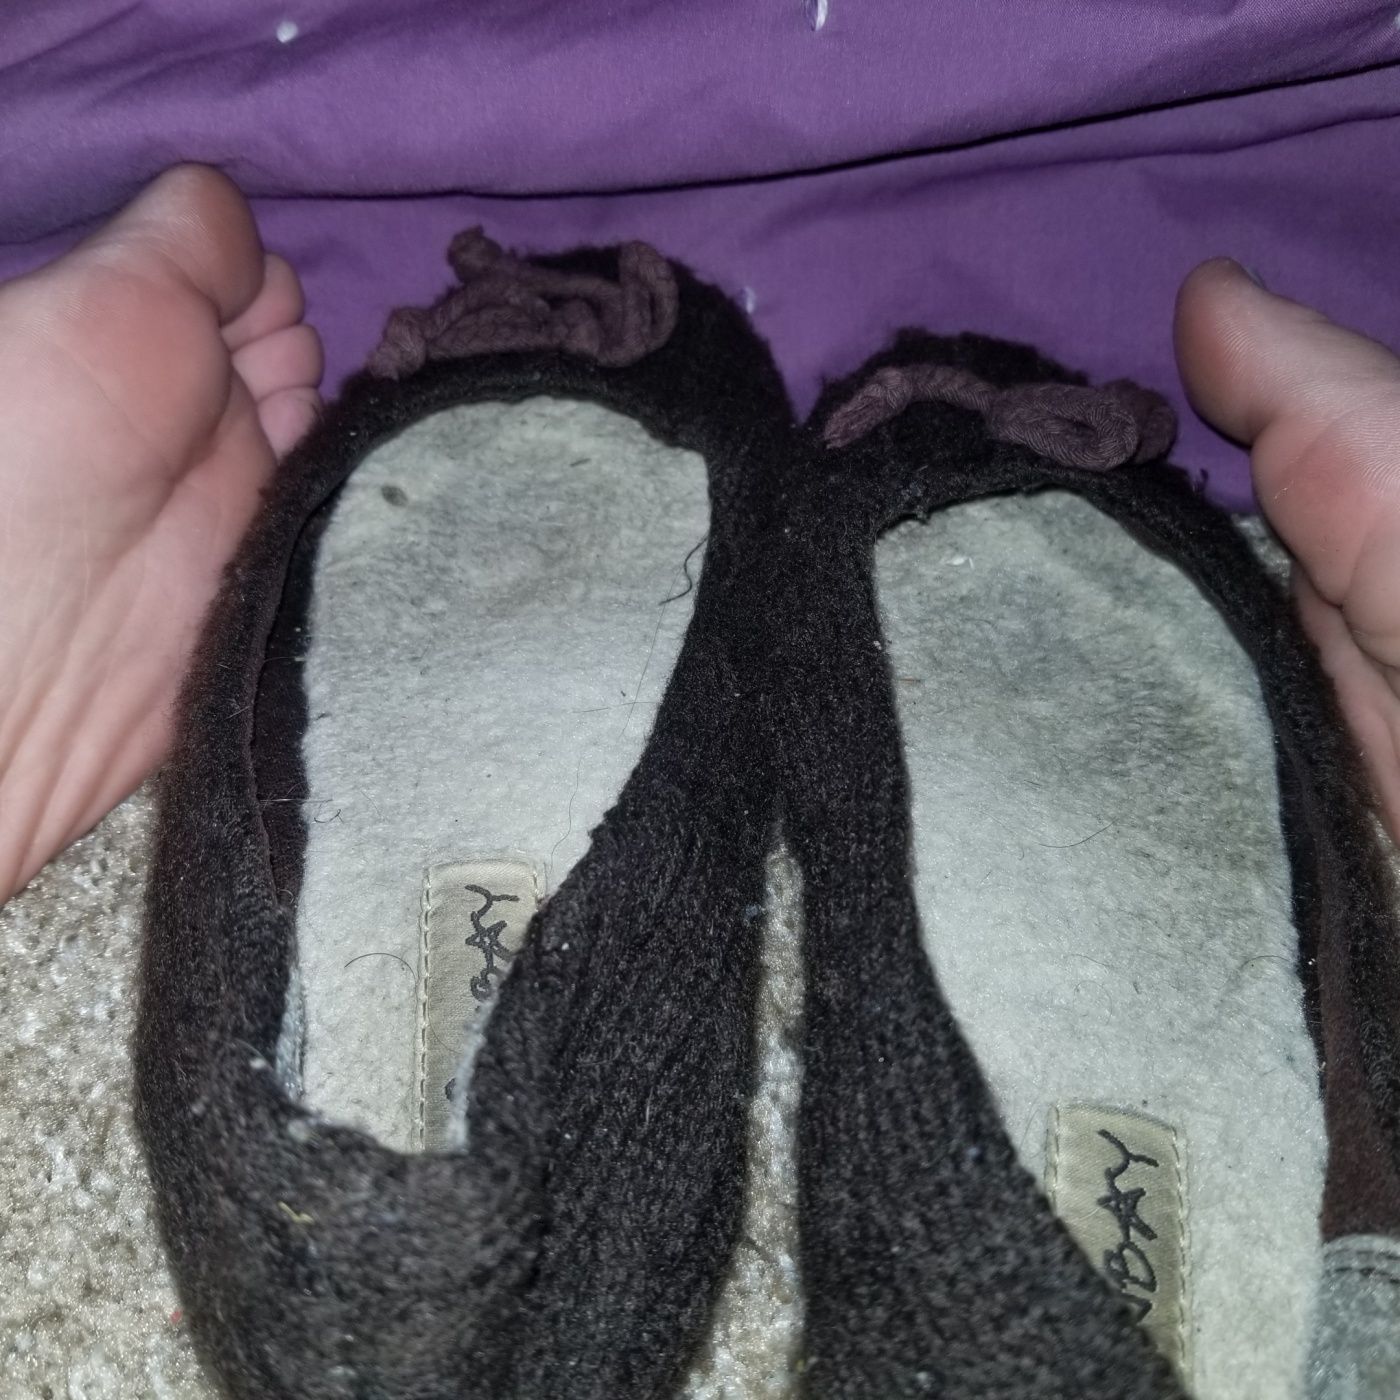 Delectable slippers - 2